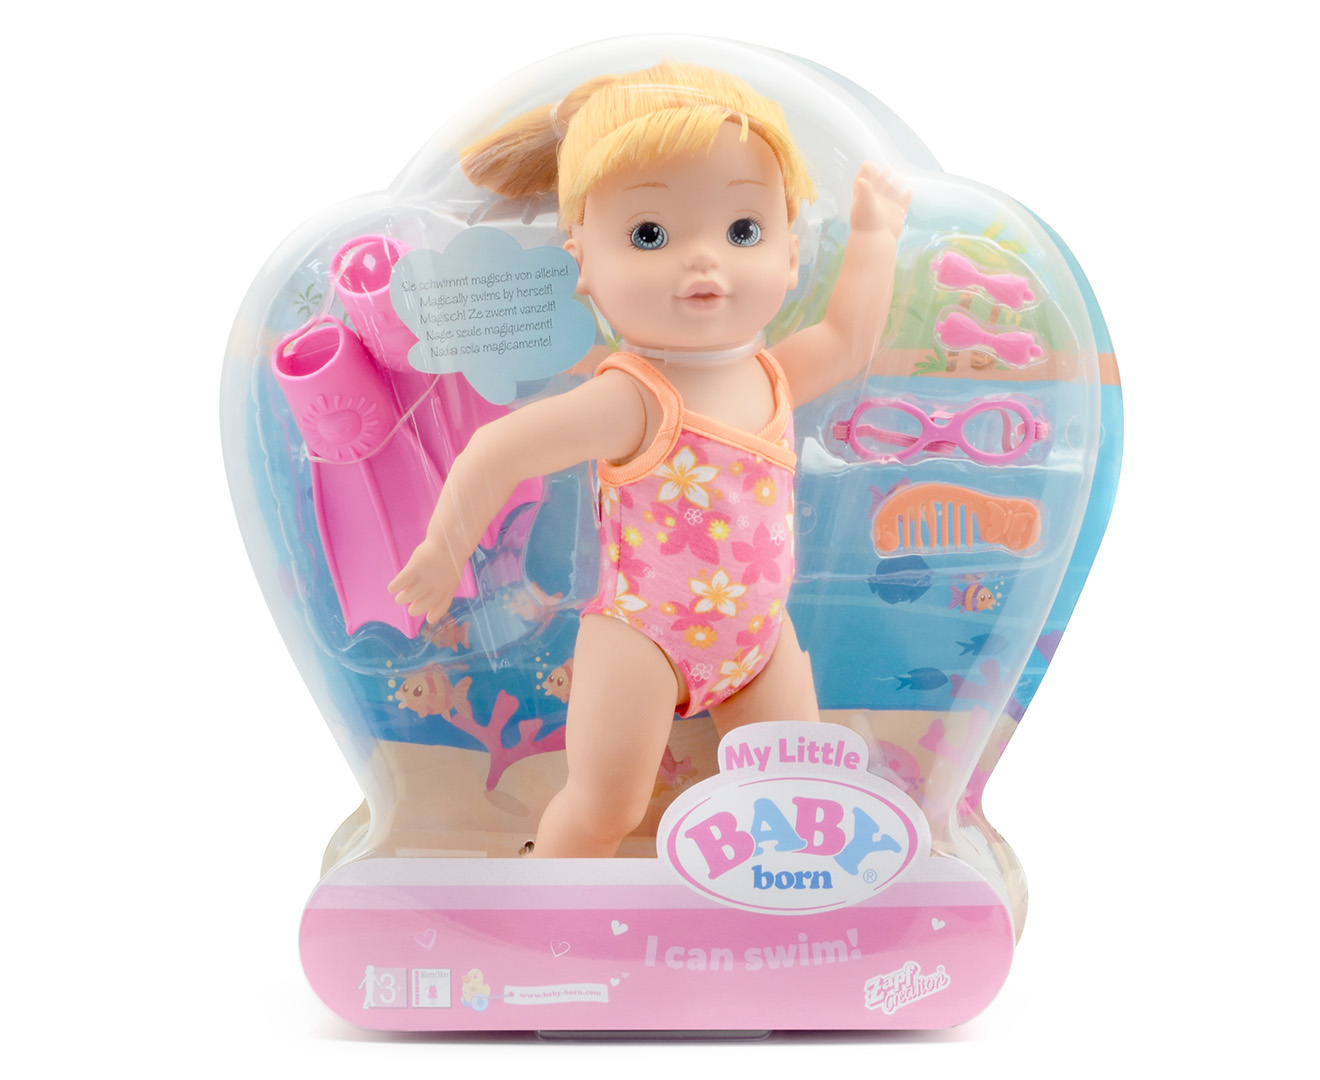 BABY Born | TheToyShop.com - the online home of The ...